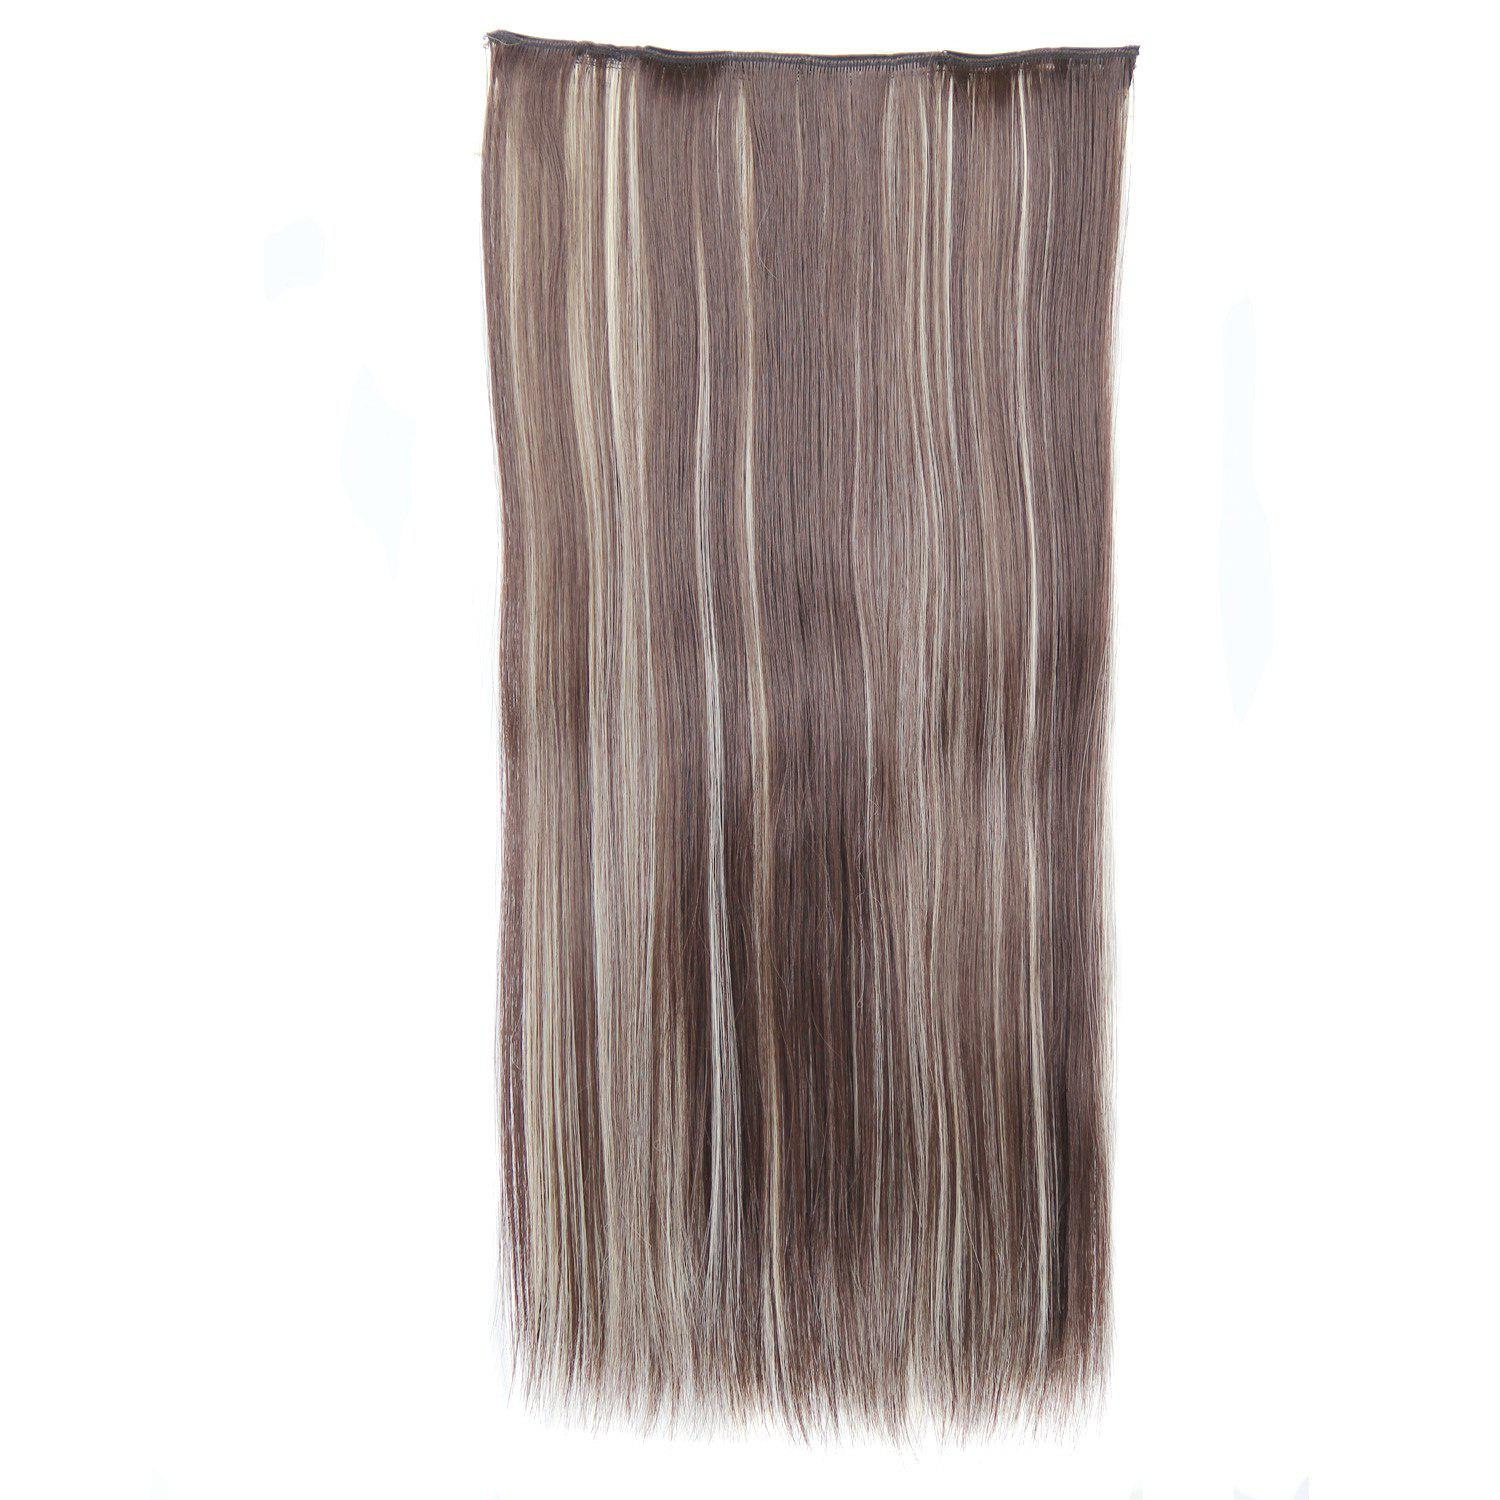 Trendy Heat Resistant Synthetic Clip-In Mixed Color Long Straight Women's Hair Extension - COLORMIX